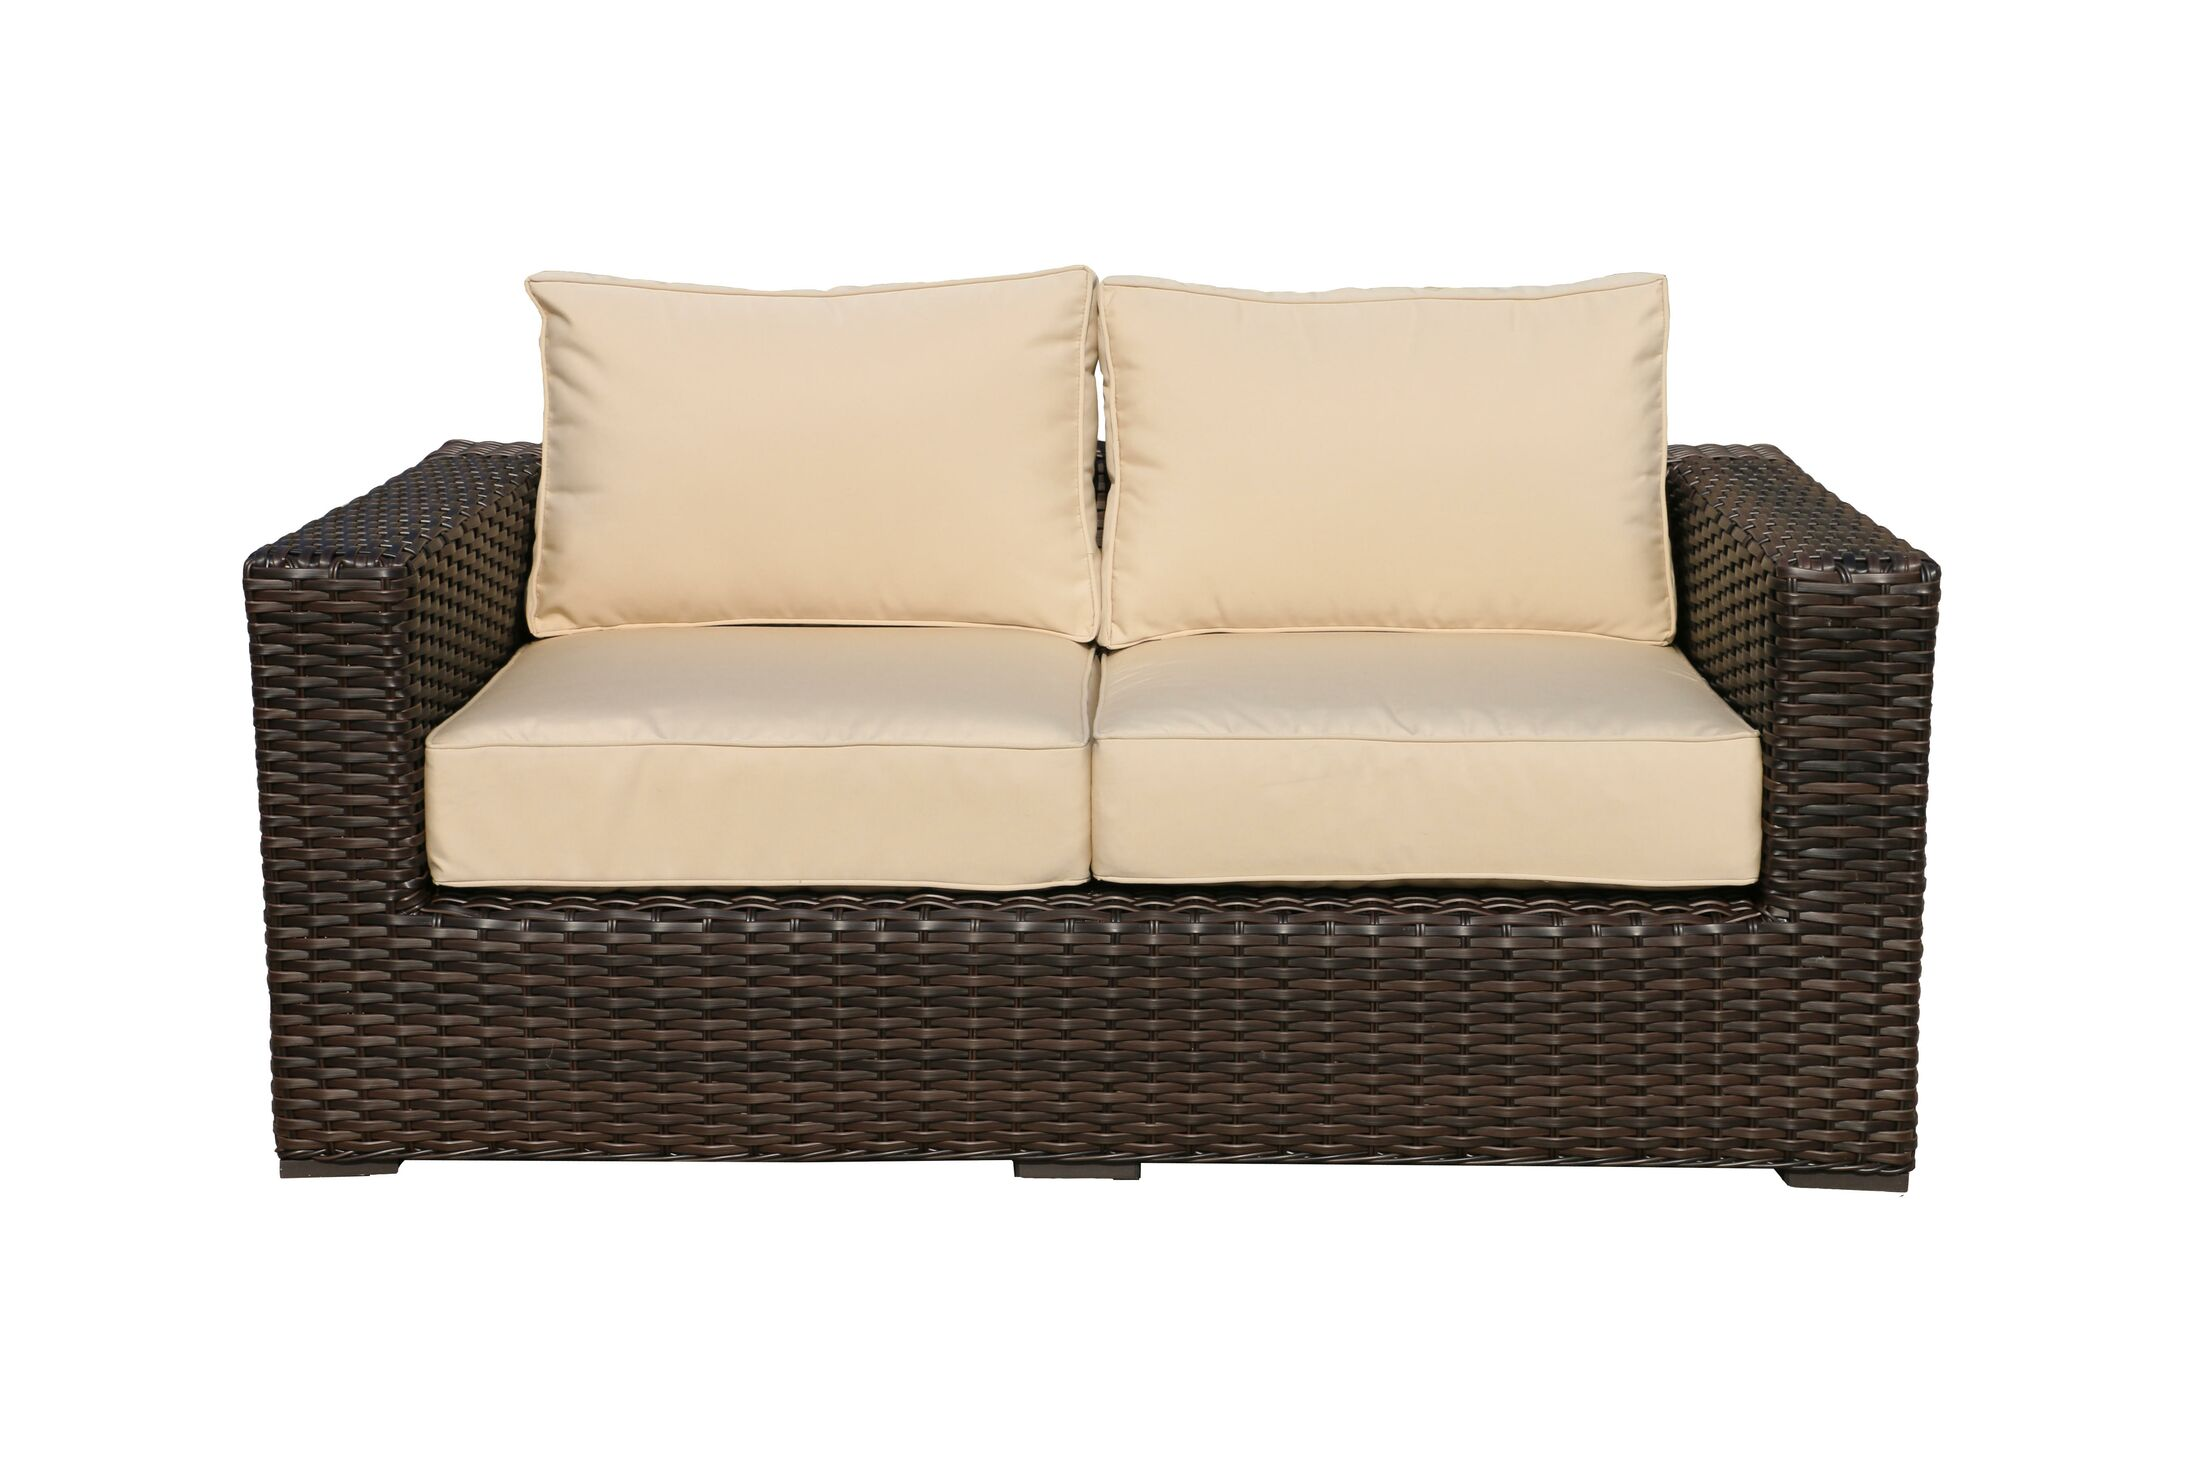 Santa Monica Loveseat with Cushions Fabric: Beige